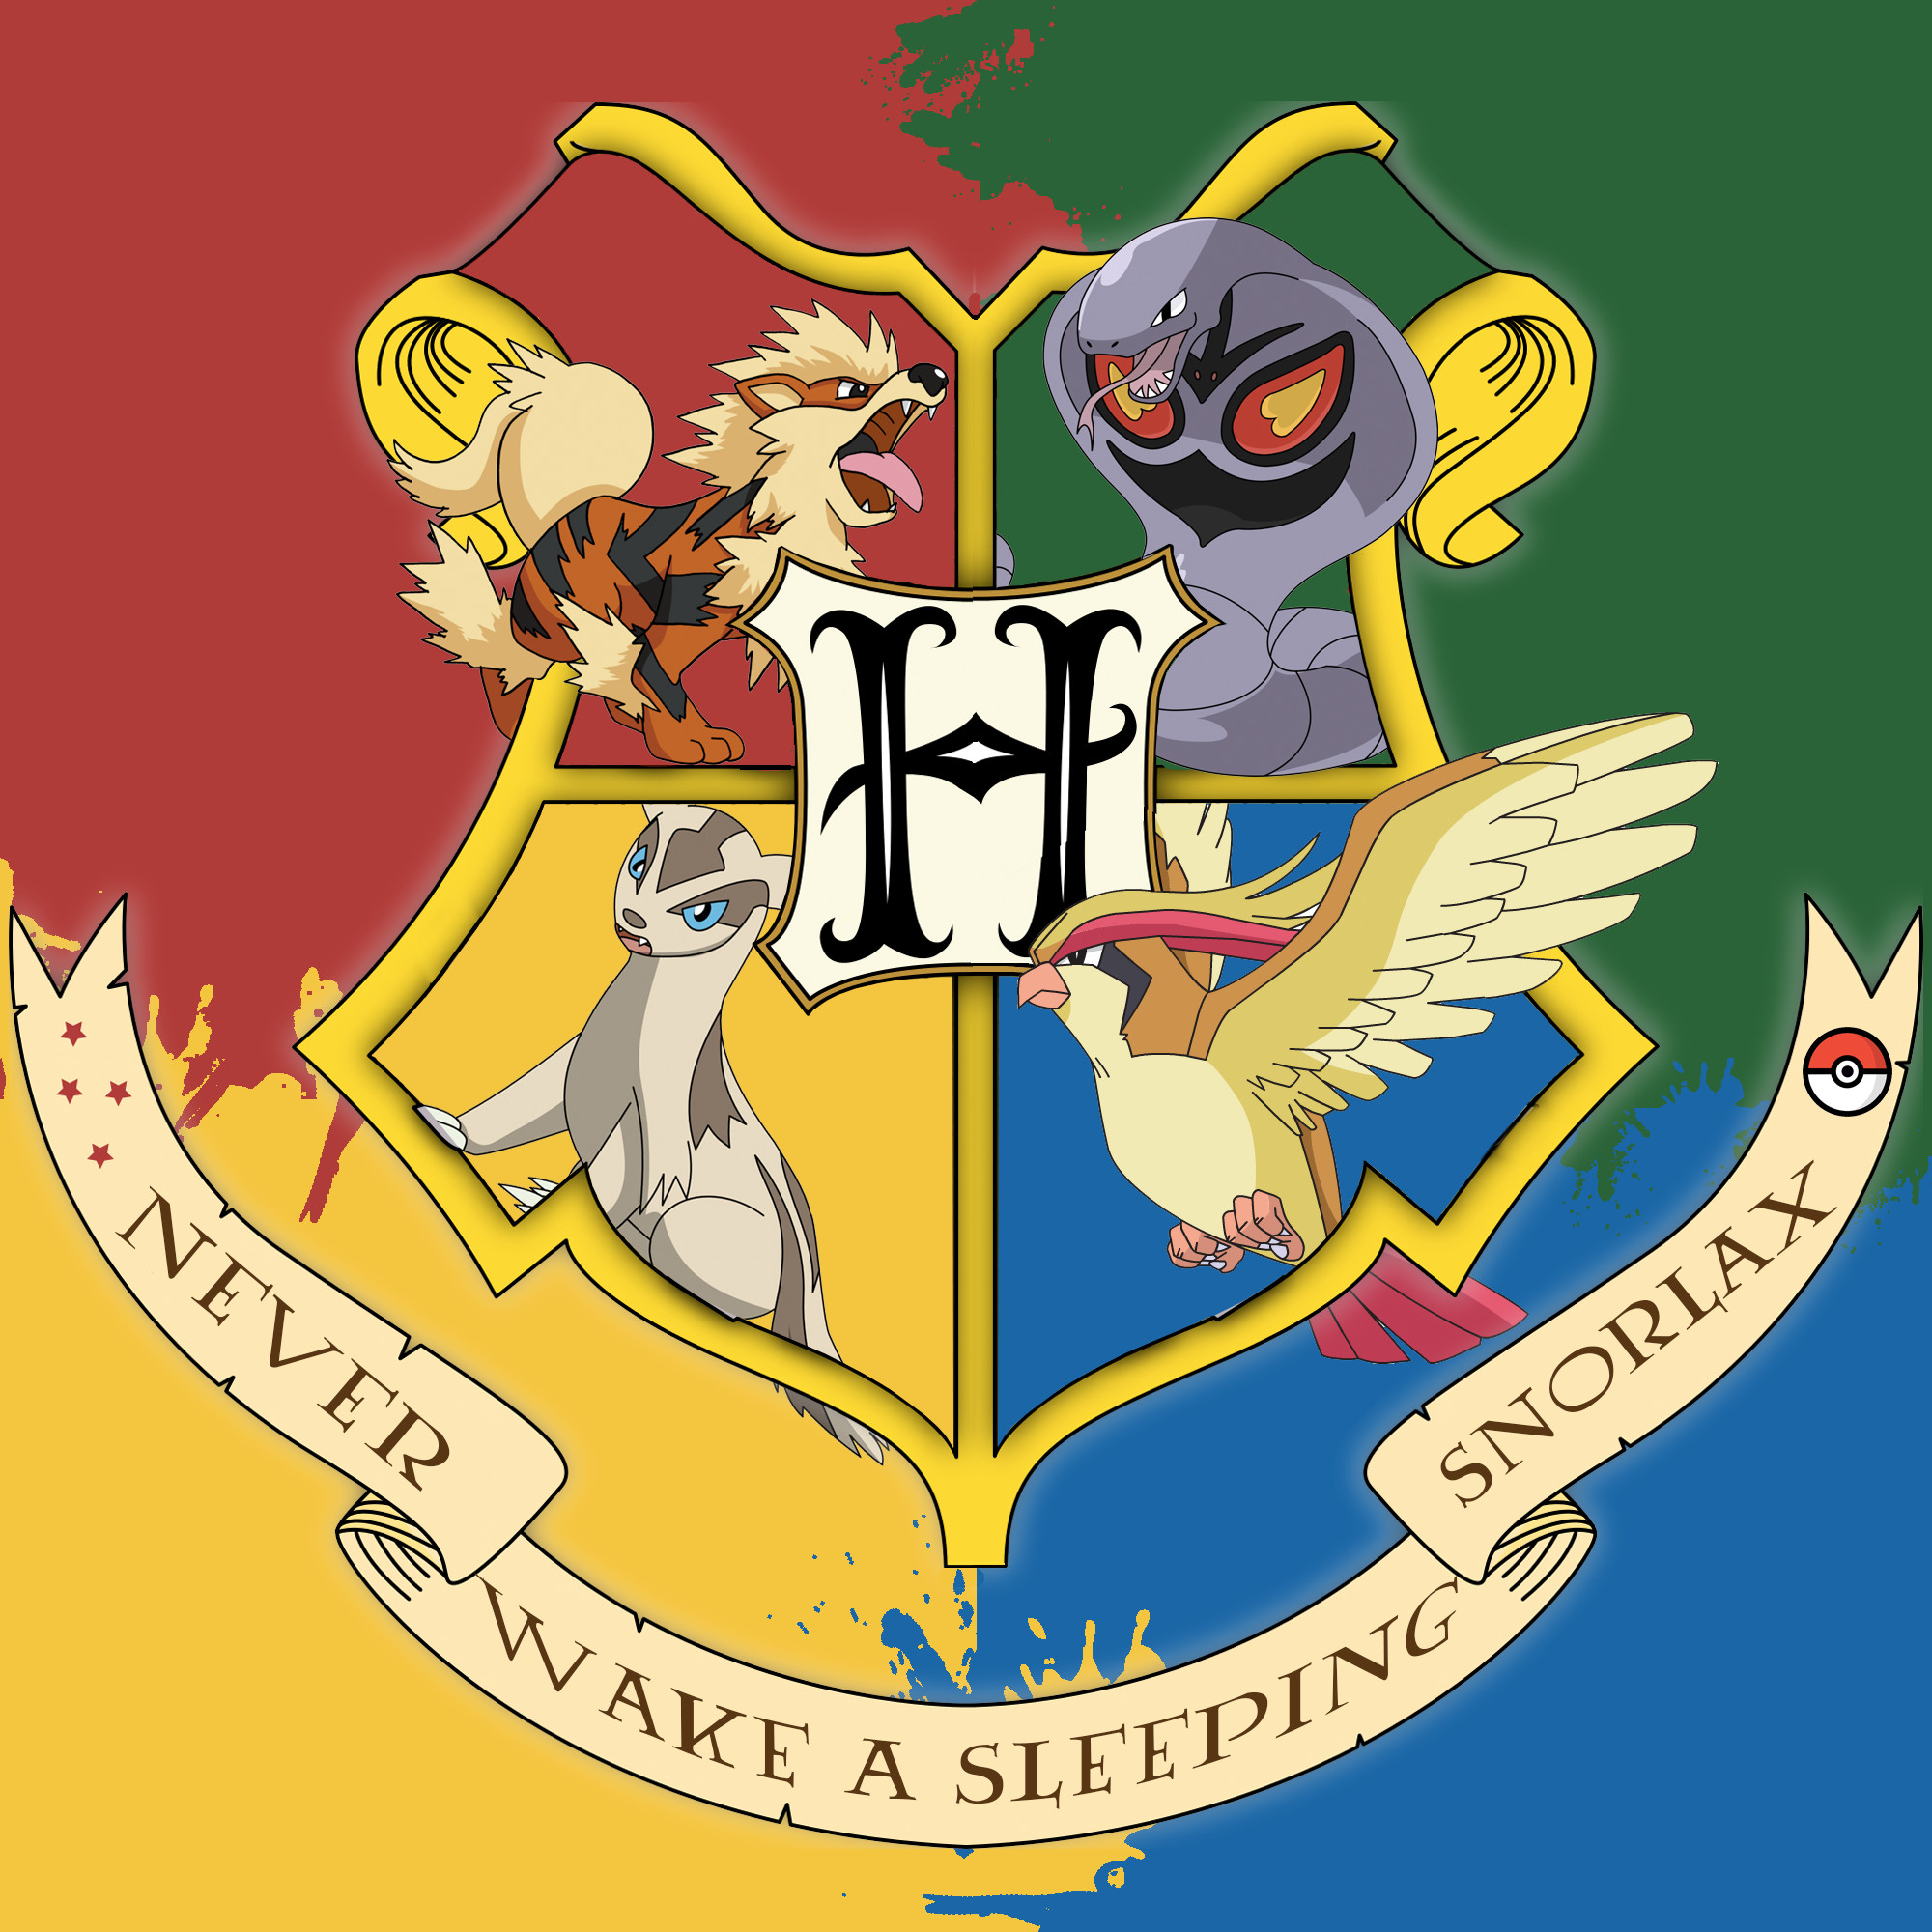 I made this for all the Pokémon & Harry Potter fans out there!